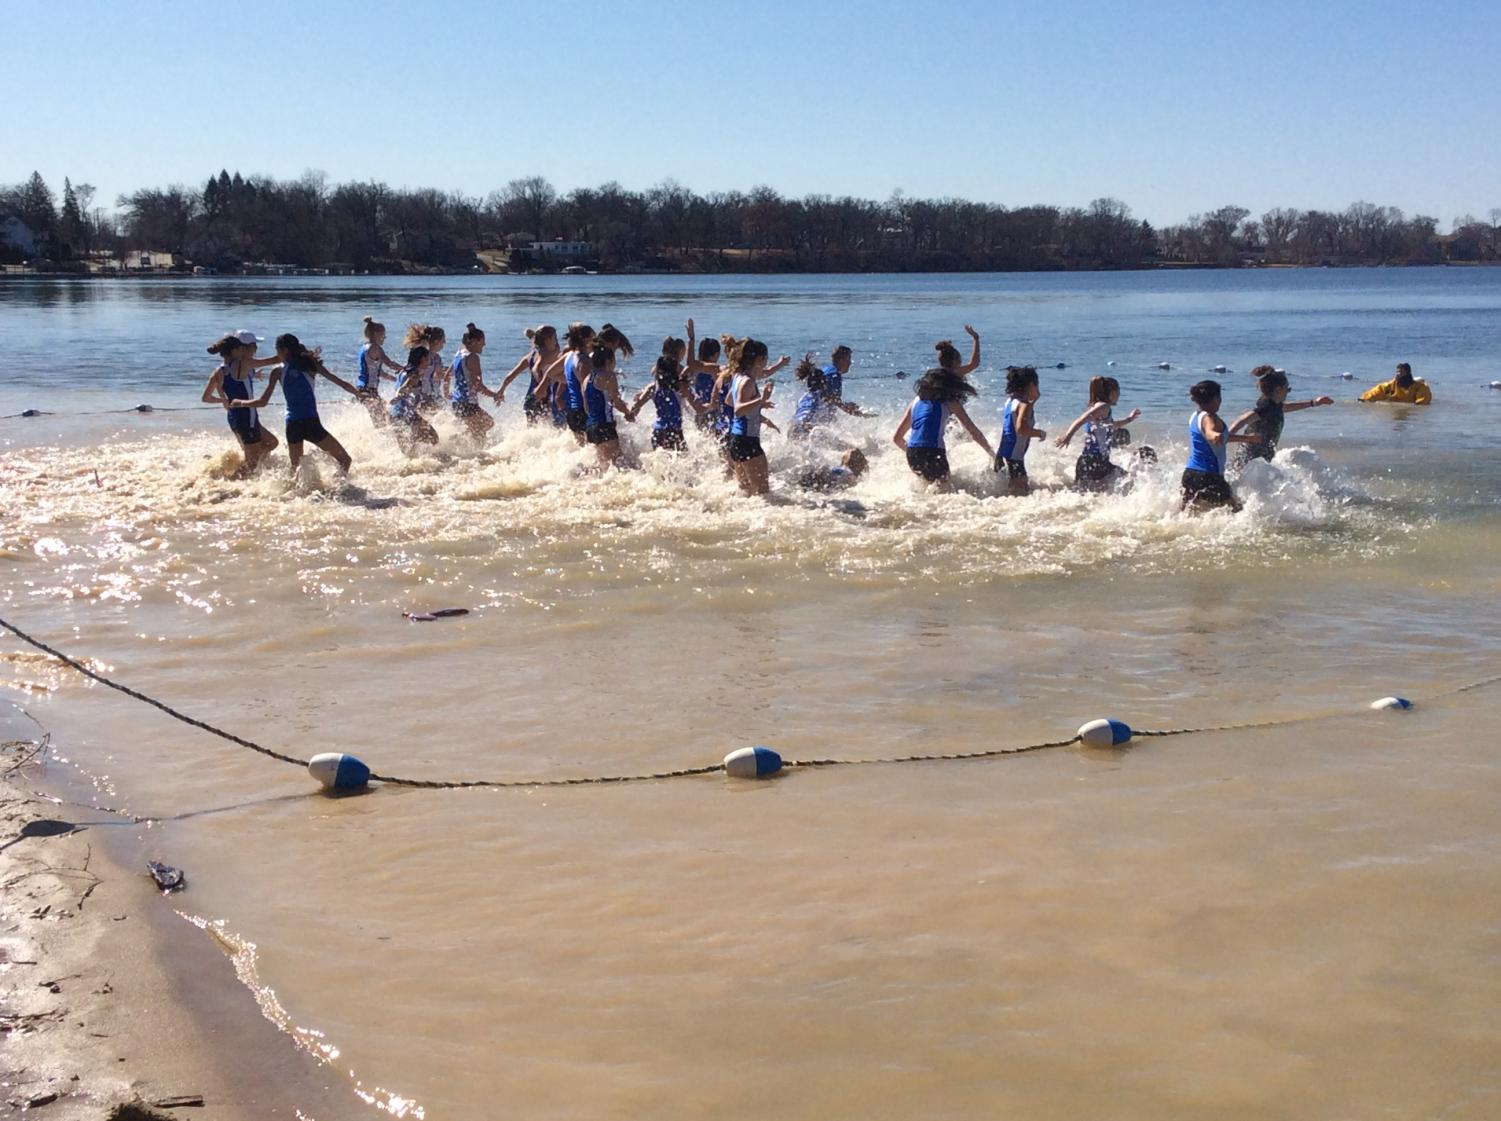 The girls' track and field team participated in the Polar Plunge, among other teams, community groups, and families. The event raised money for families affected by cancer.